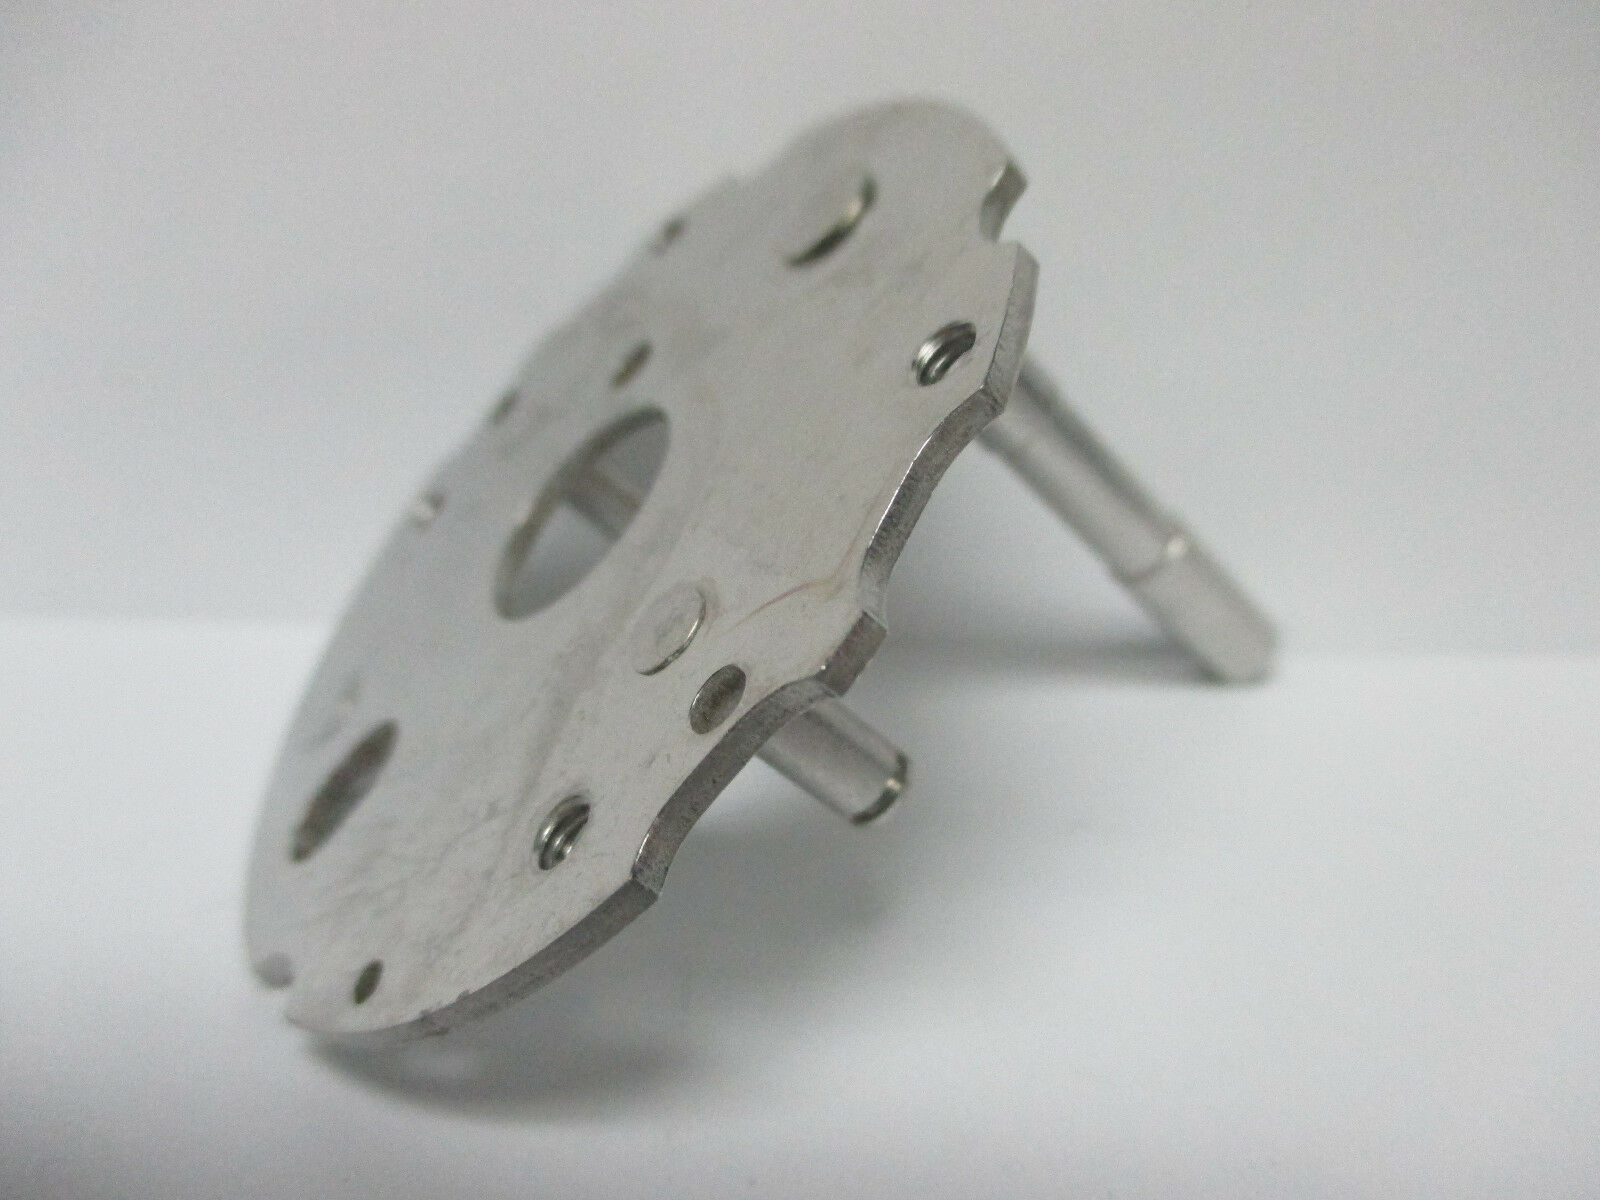 NEW NEWELL CONVENTIONAL REEL PART - - PART C 220 5 - Bridge Only bab45e